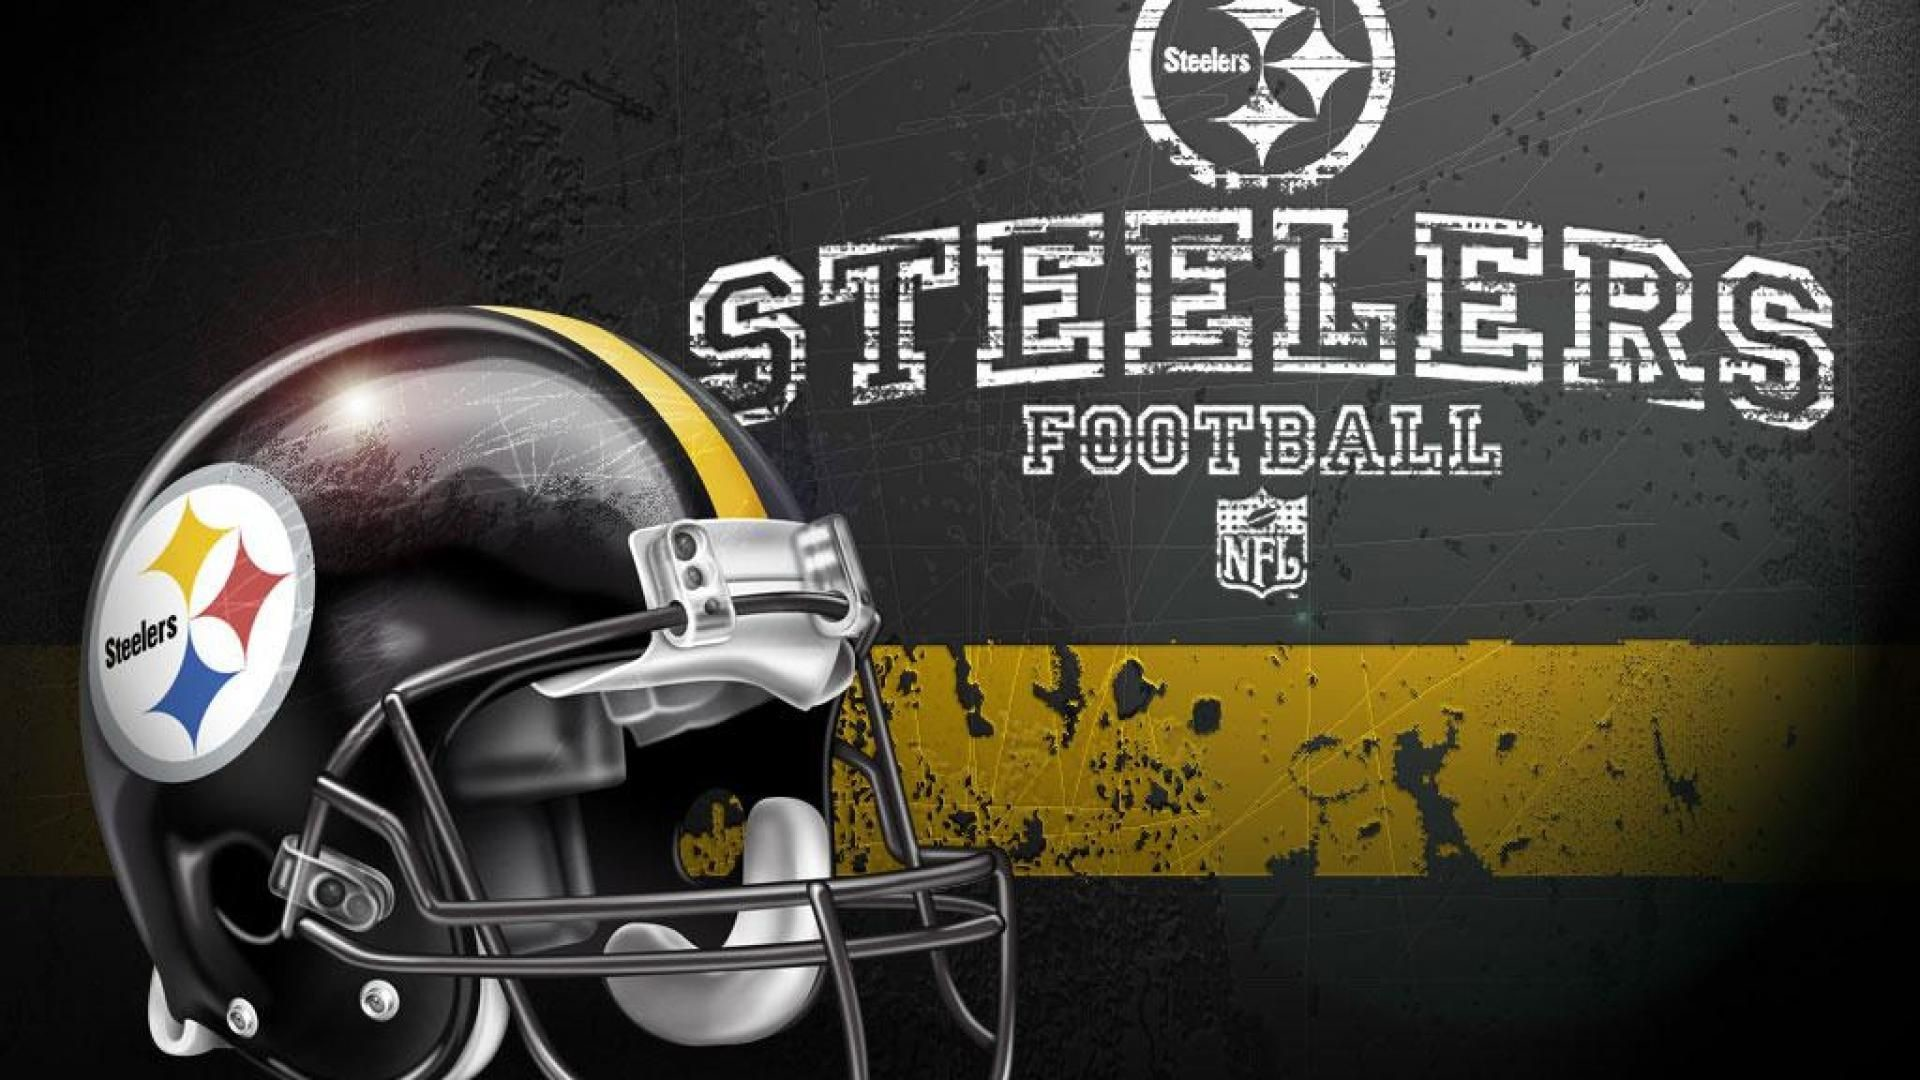 1920x1080 Pittsburgh Steelers Wallpapers - Wallpaper Cave